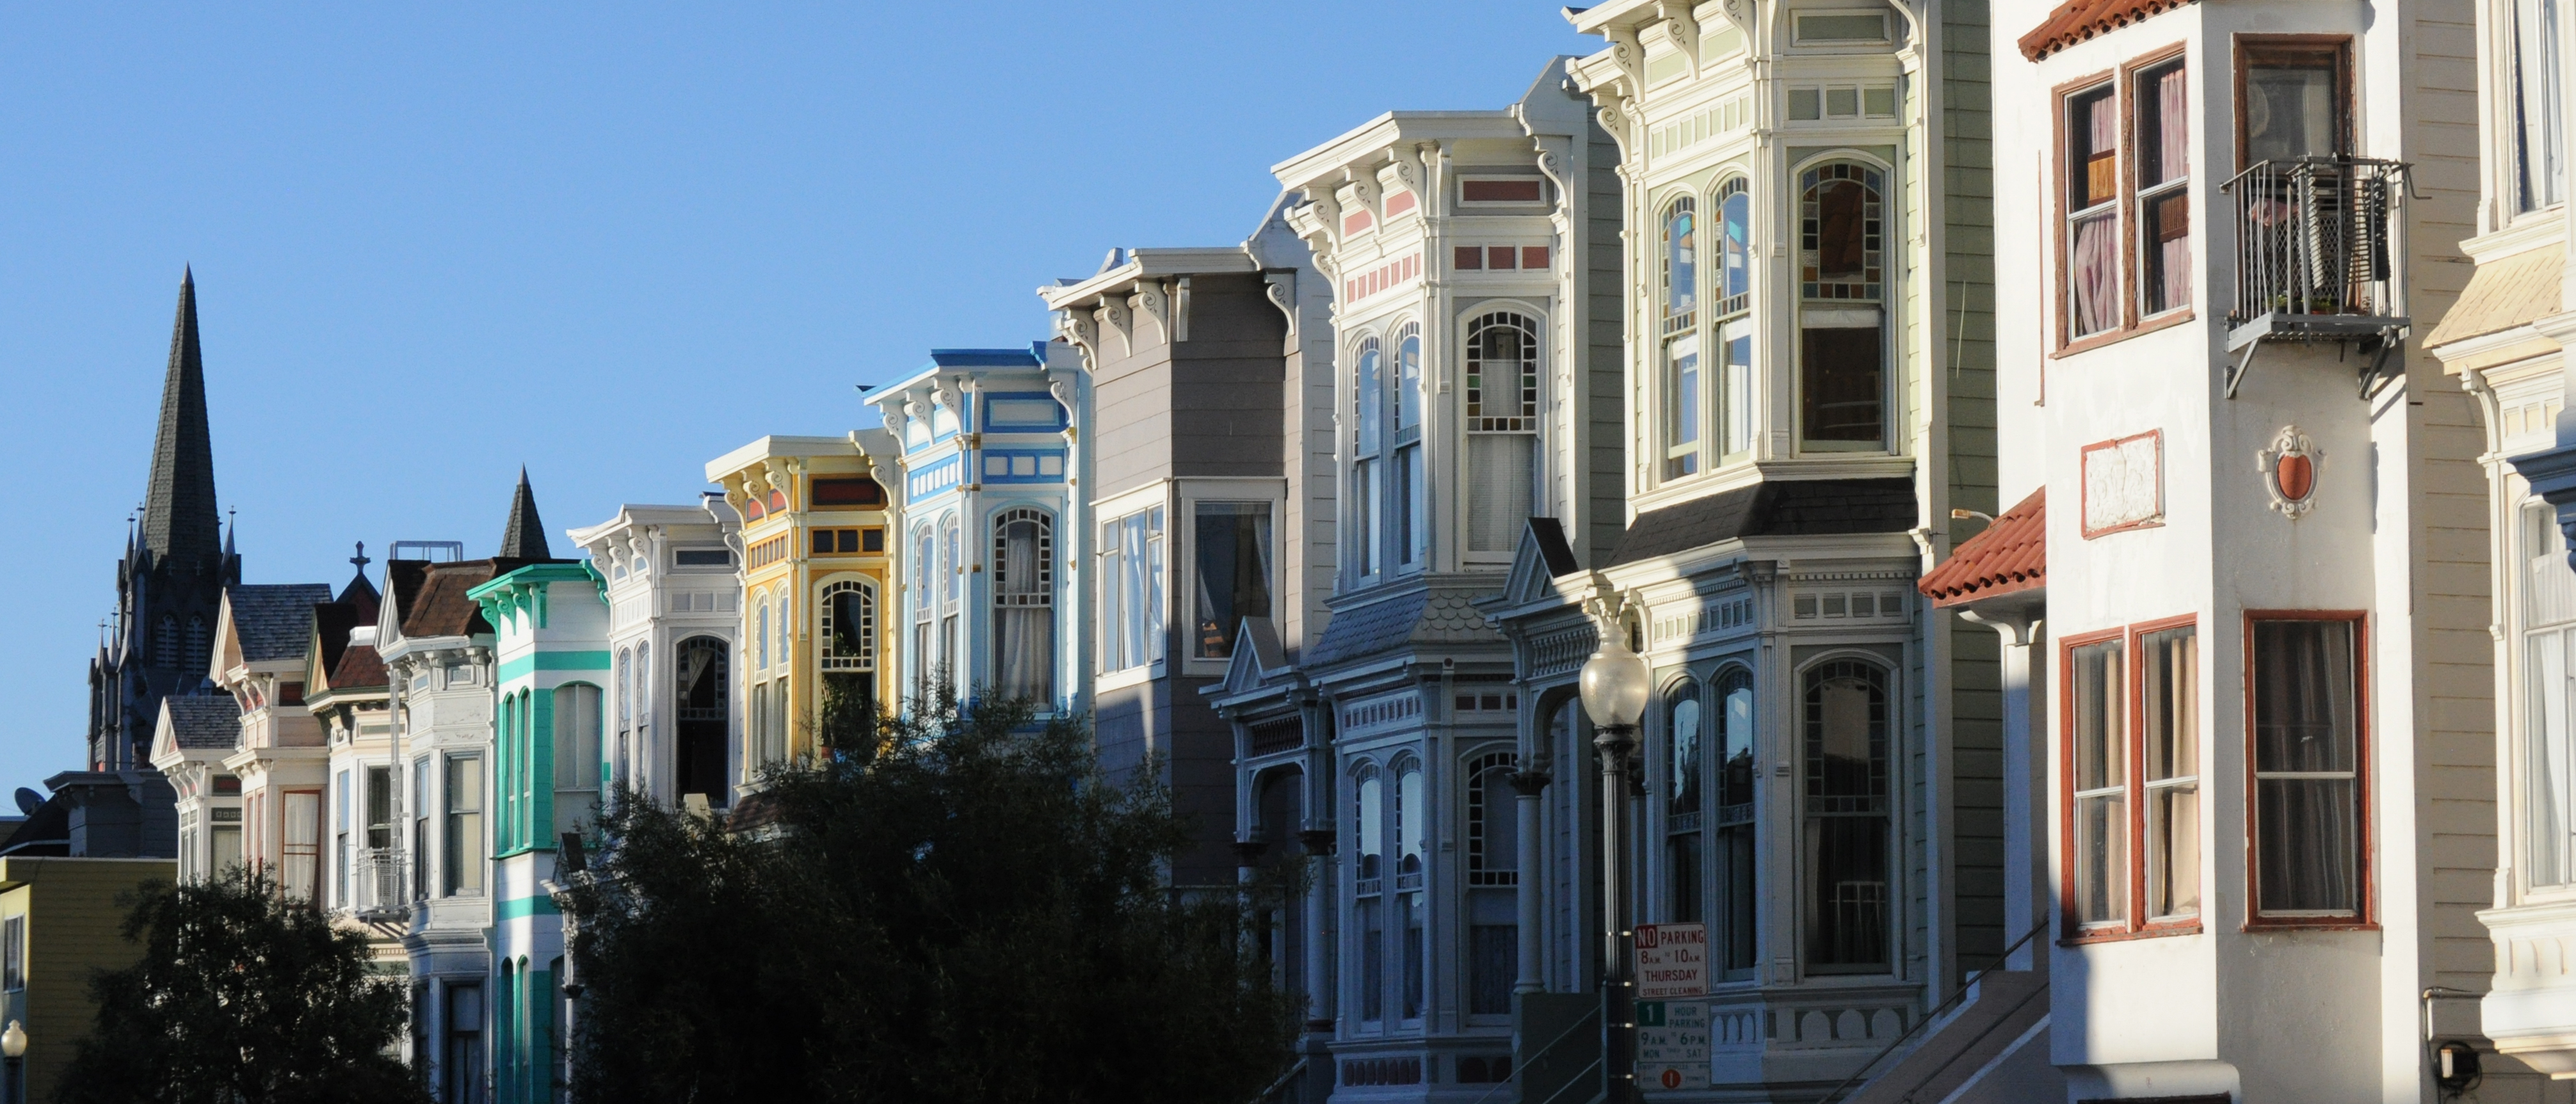 Escape To Modern House 3 Bedroom Apartment San Francisco Ca. 3 Bedroom Apartments San Francisco   Nrys info